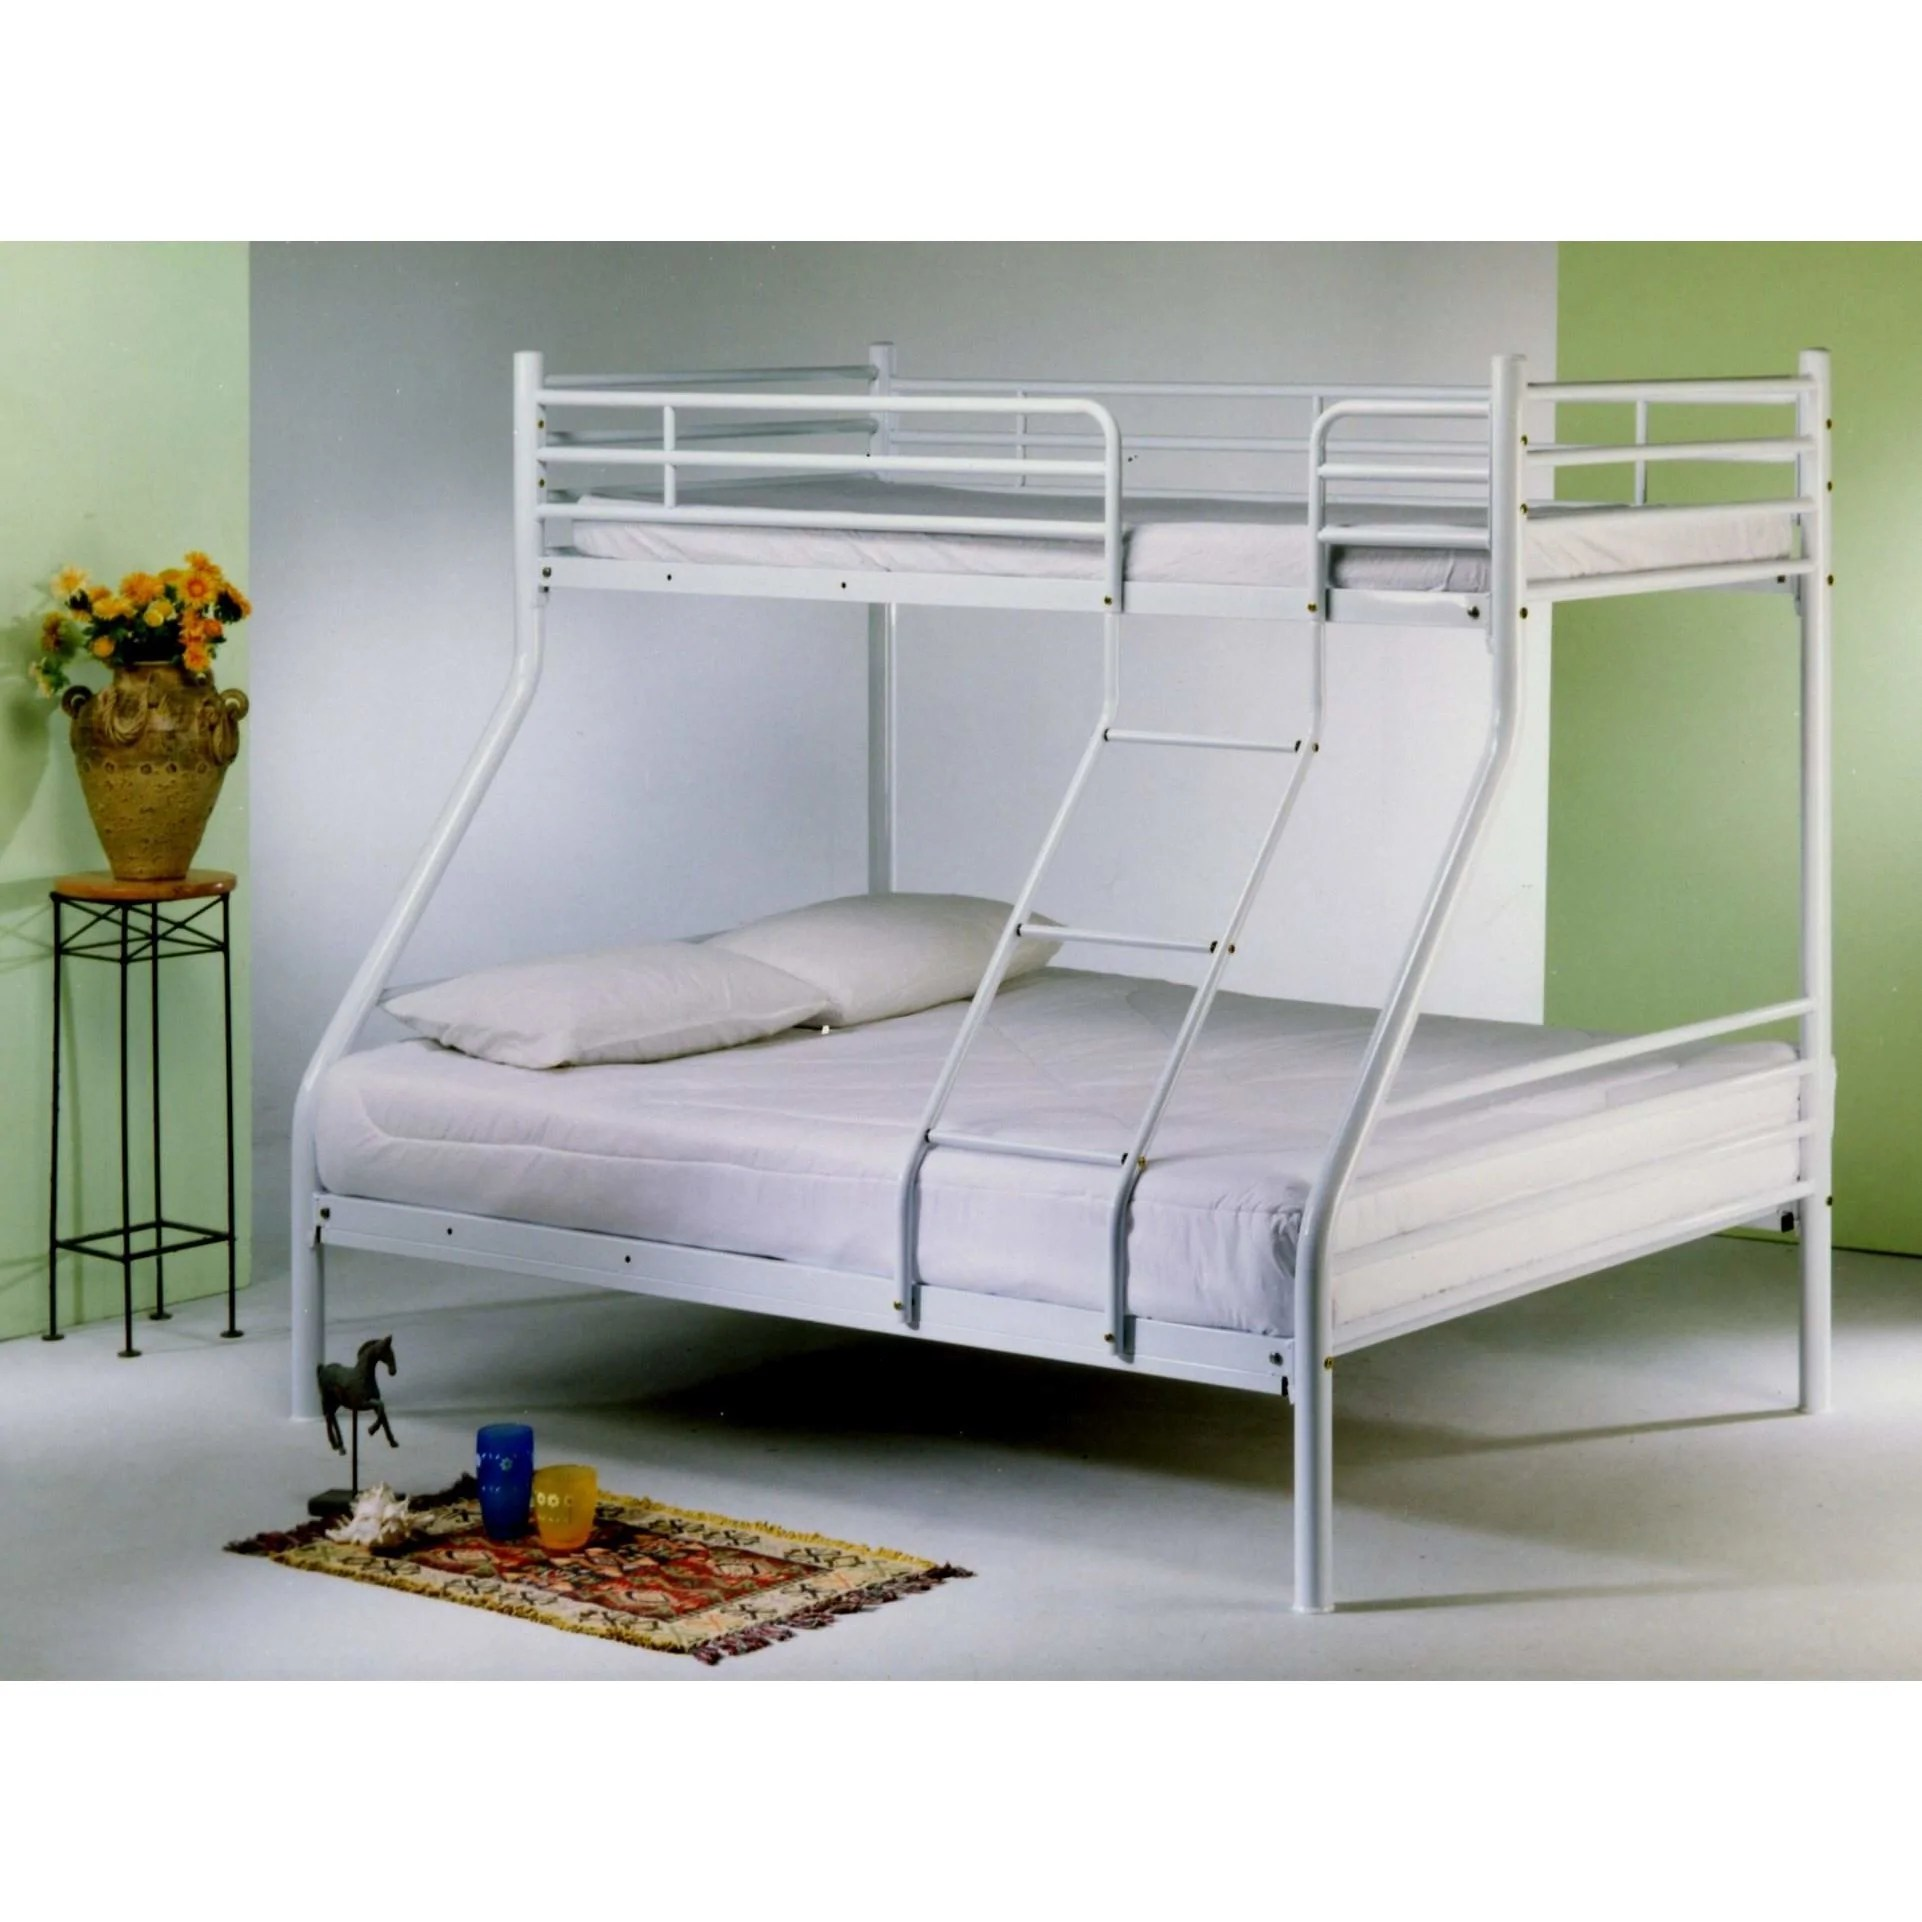 Saturn Bunk Bed Saturn Duo Bunk